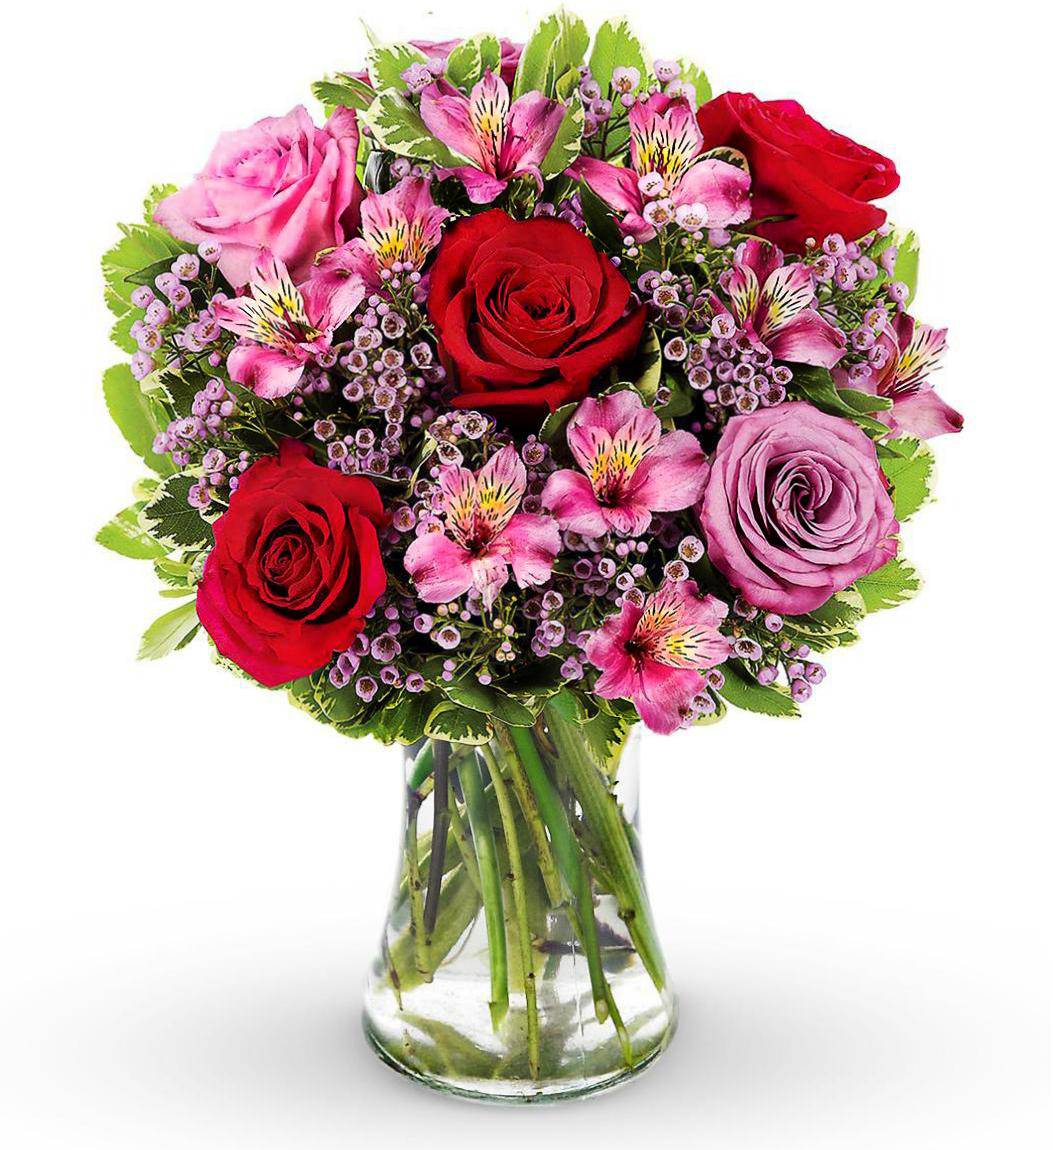 Contact Avas Flowers: Find below customer service details of Avas Flowers, US, including phone and email. Besides contact details, the page also offers a brief overview of the floral company and its services. Reach the Avas Flowers customer service below for queries, complaints or feedback.